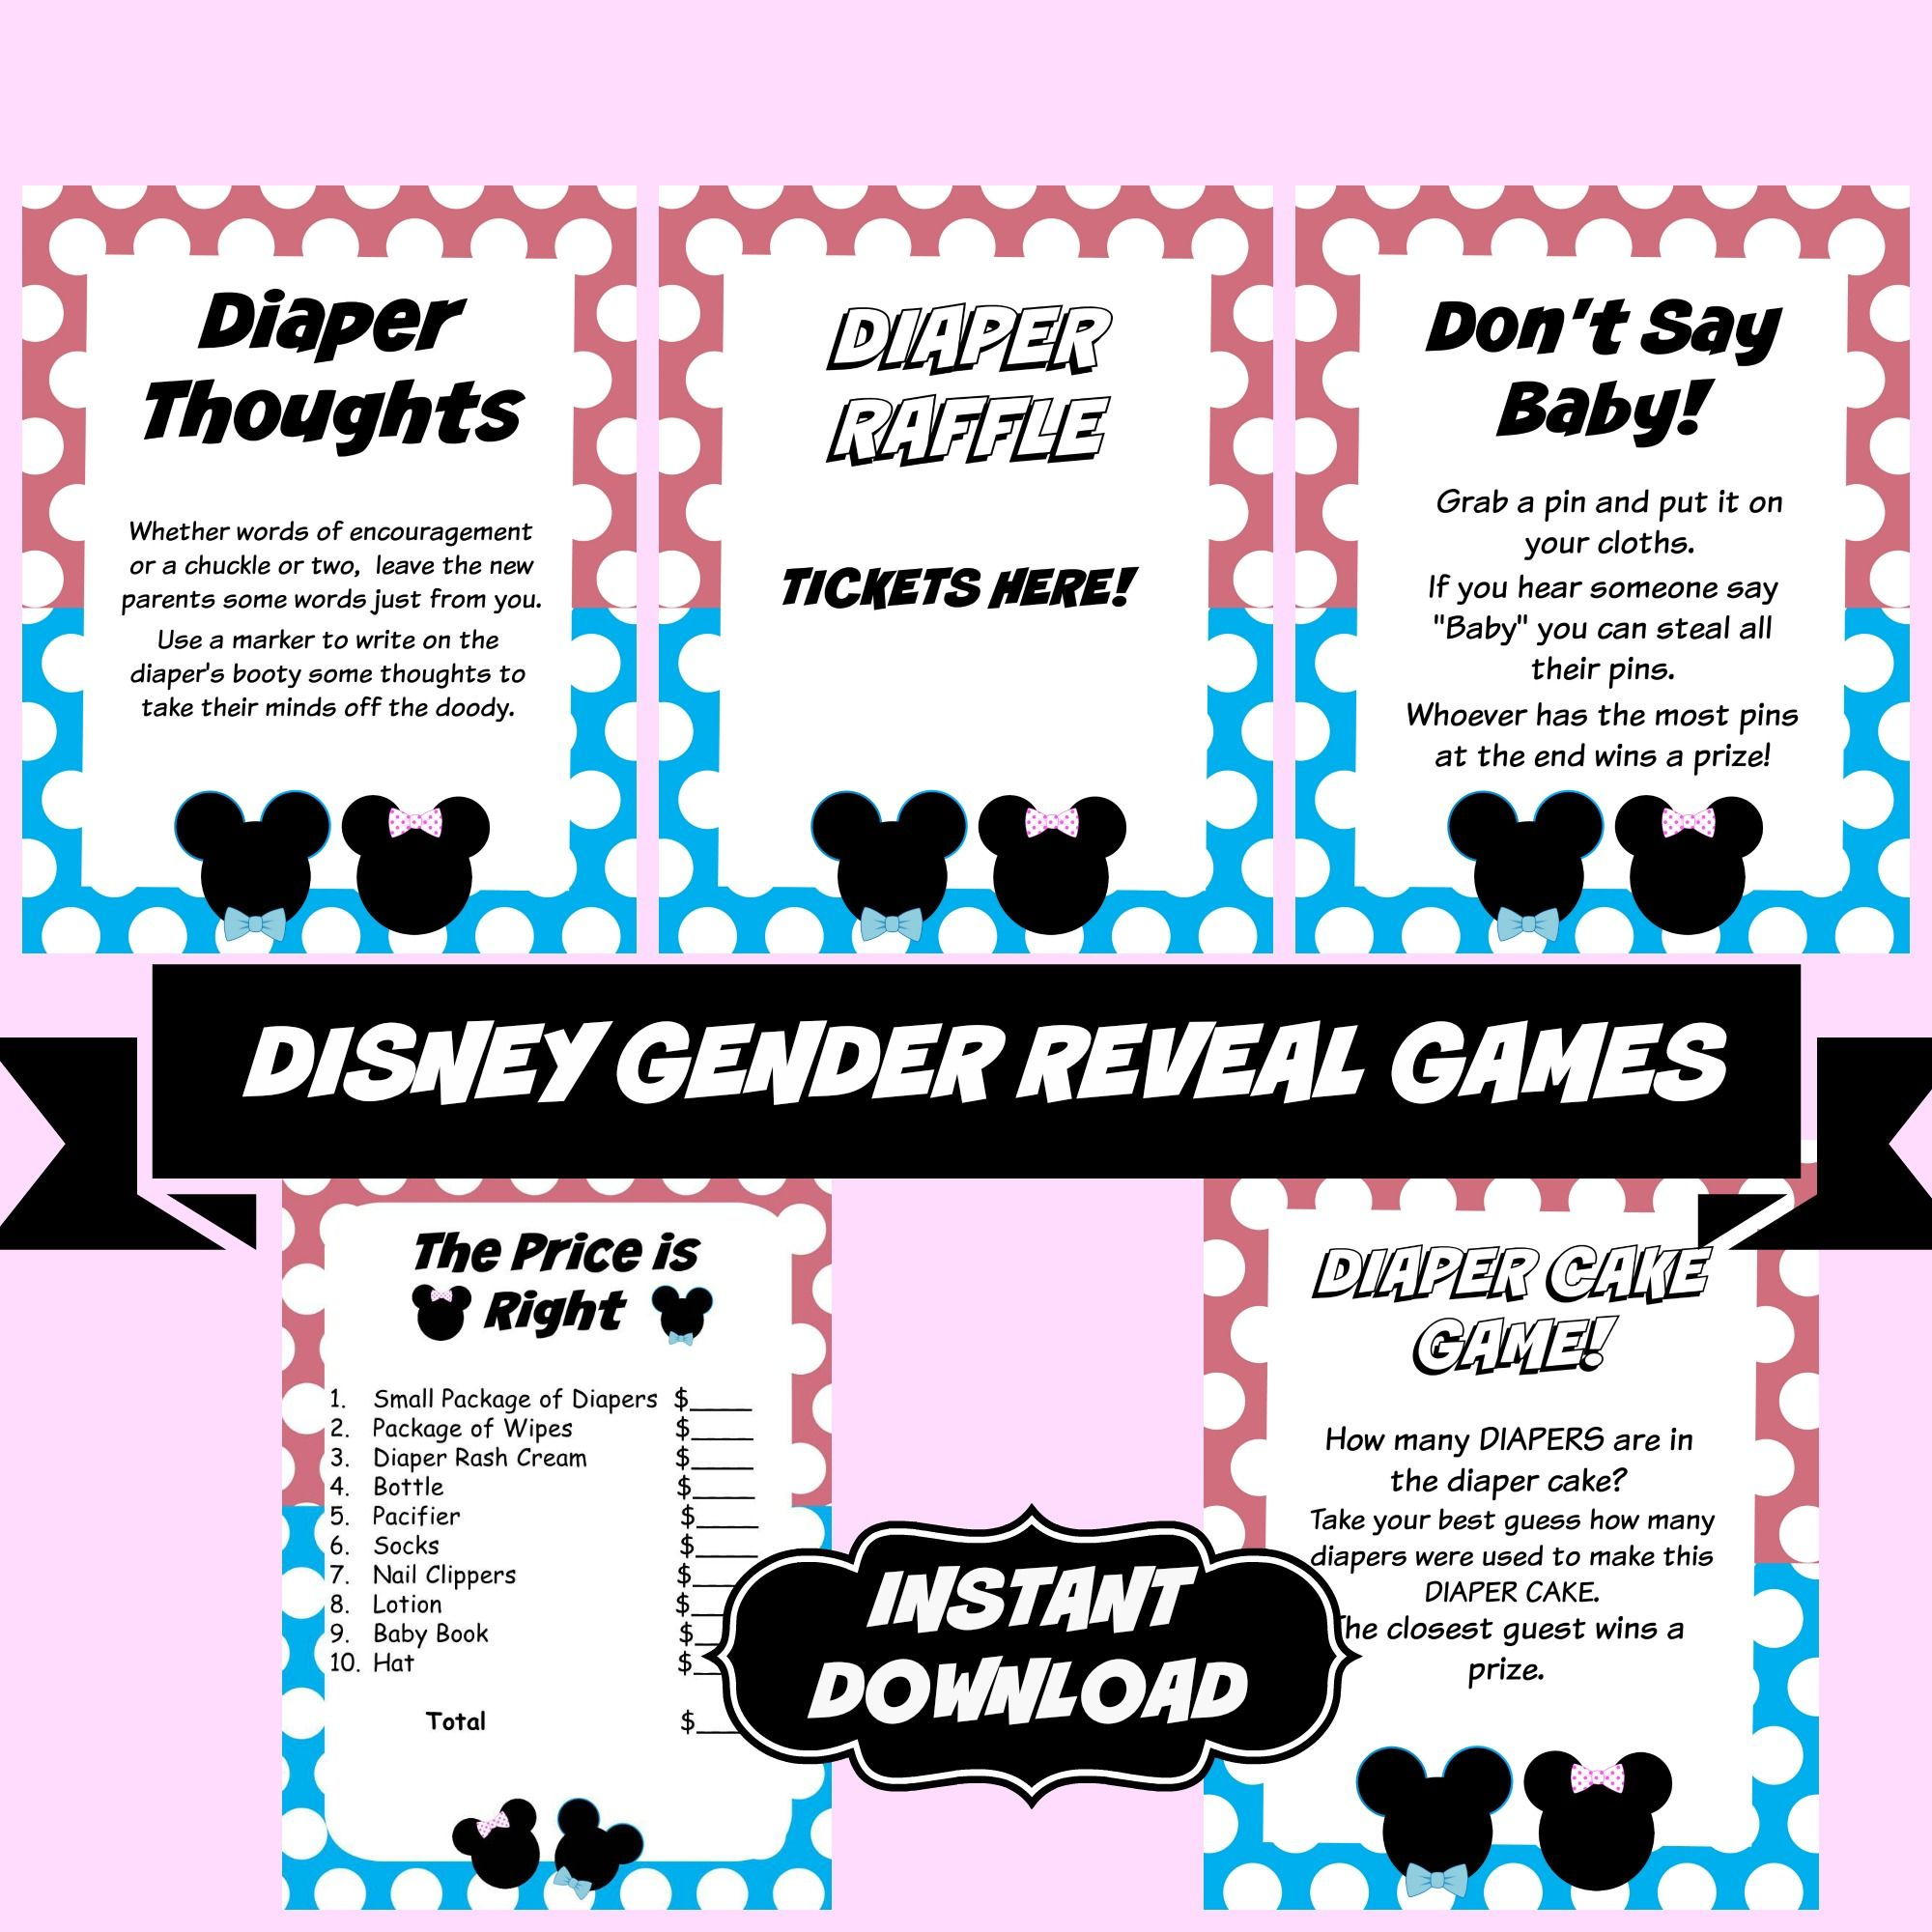 Gender Reveal Disney Baby shower Games for sale on Etsy to